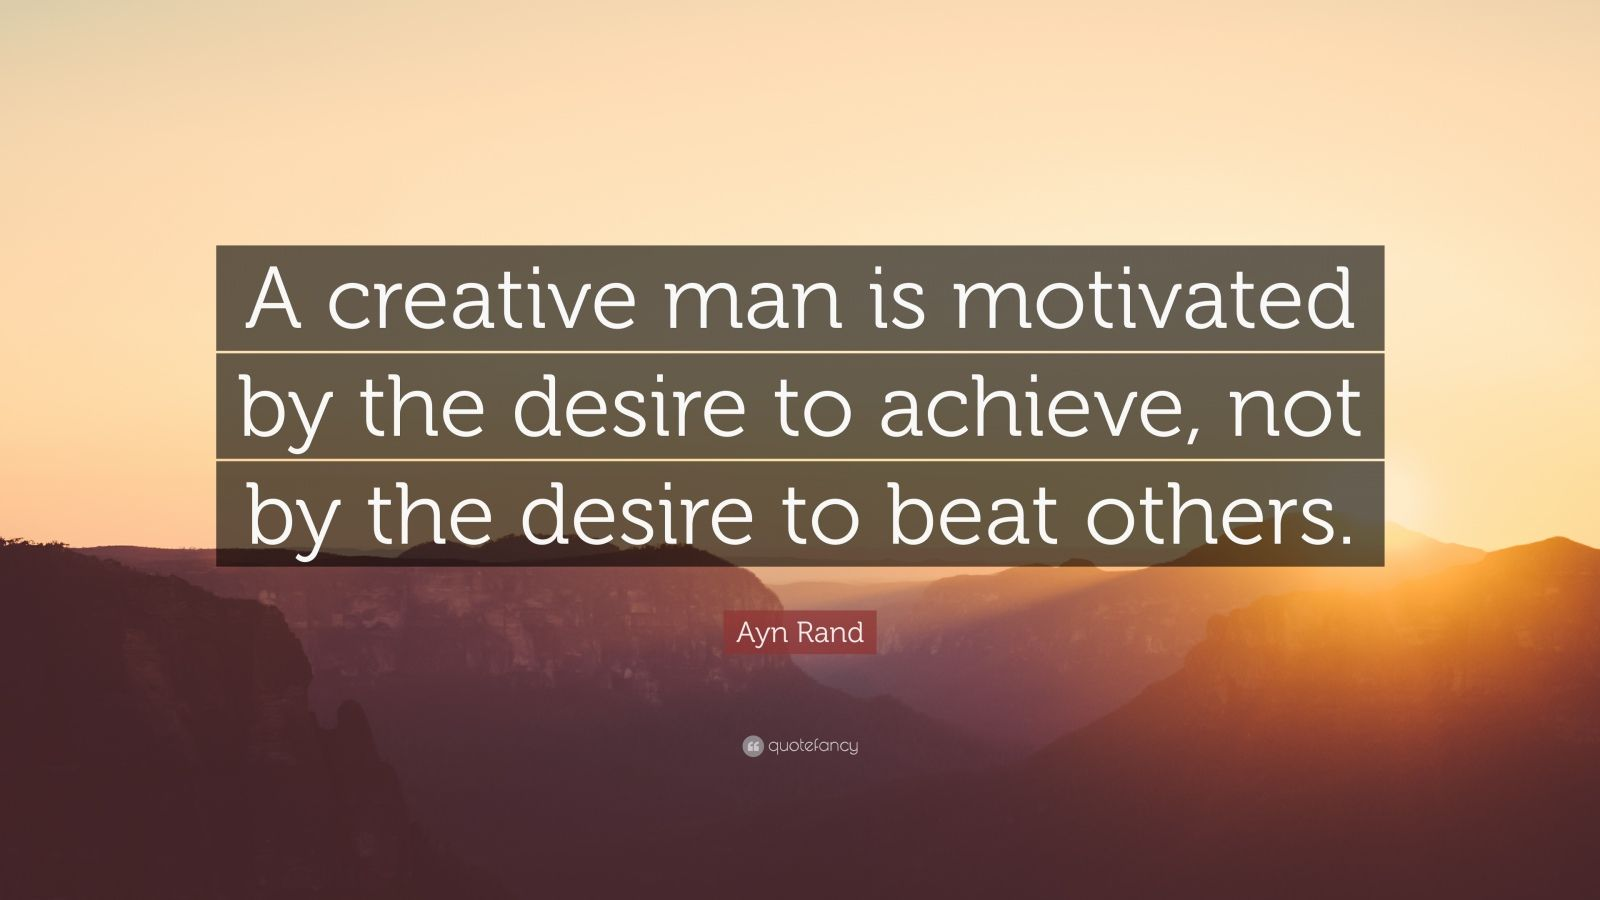 John Lennon Wallpaper Quotes Ayn Rand Quote A Creative Man Is Motivated By The Desire